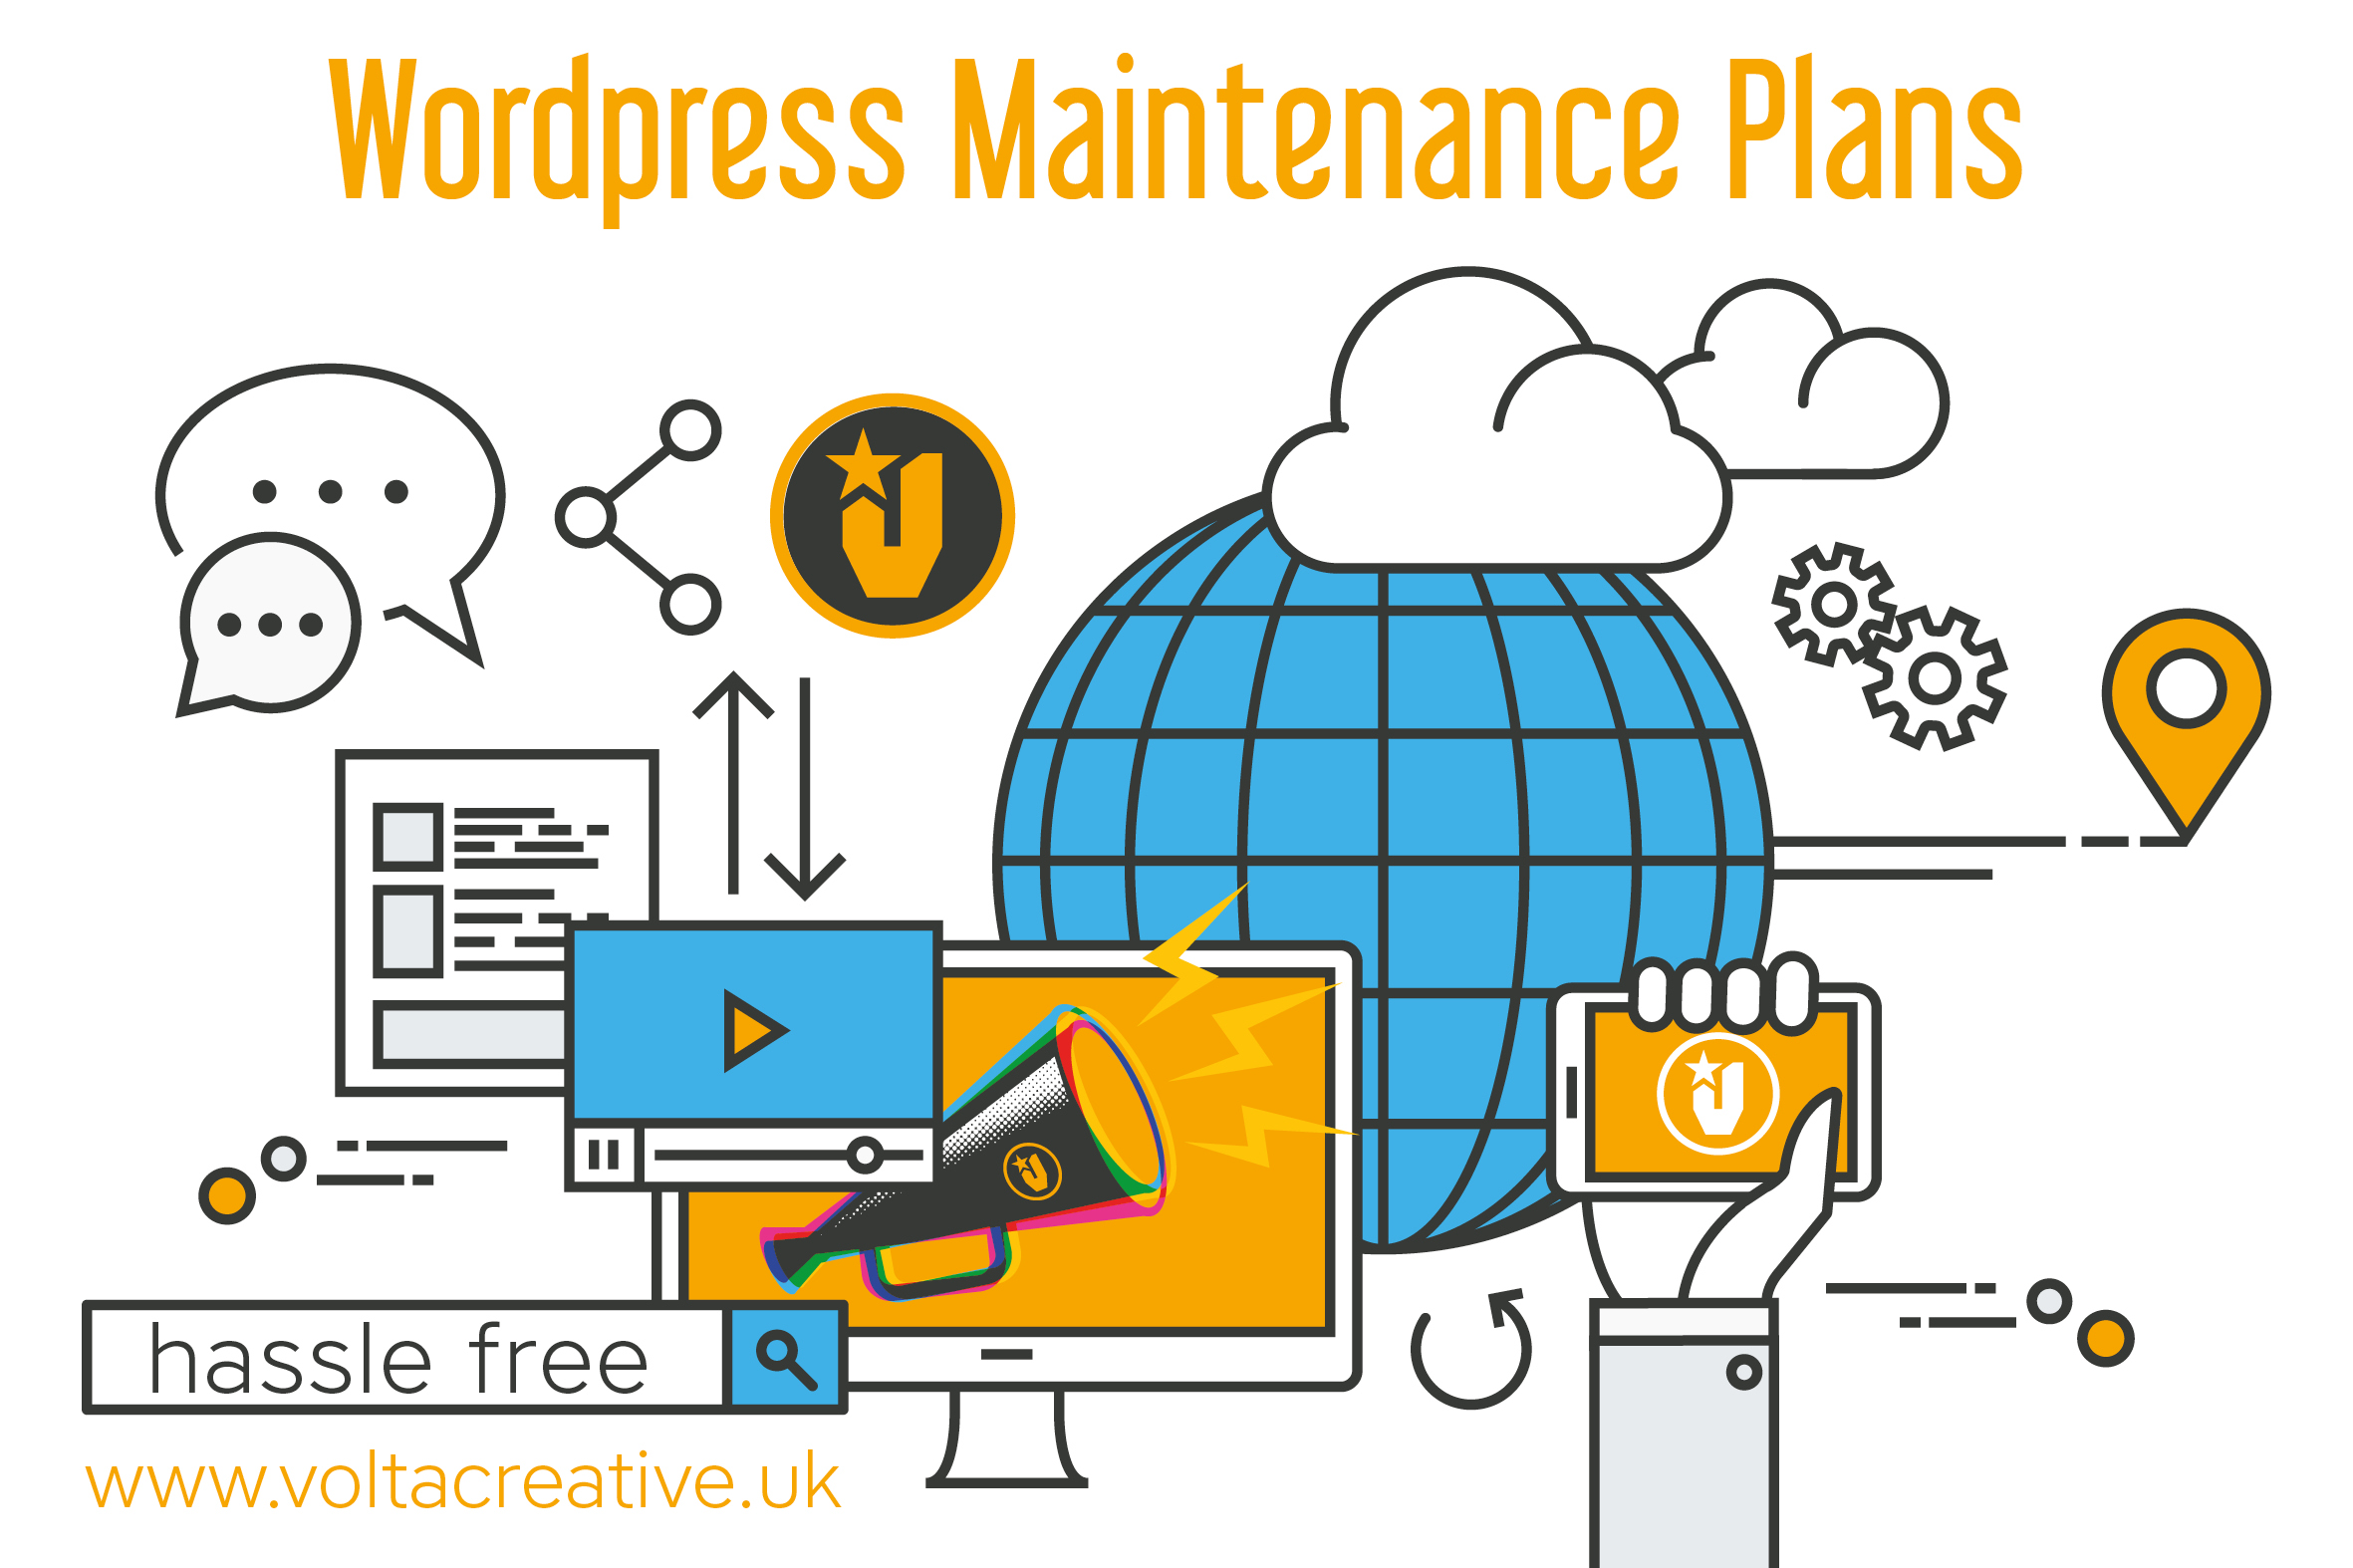 Wordpress Maintenance Plans from Volta Creative